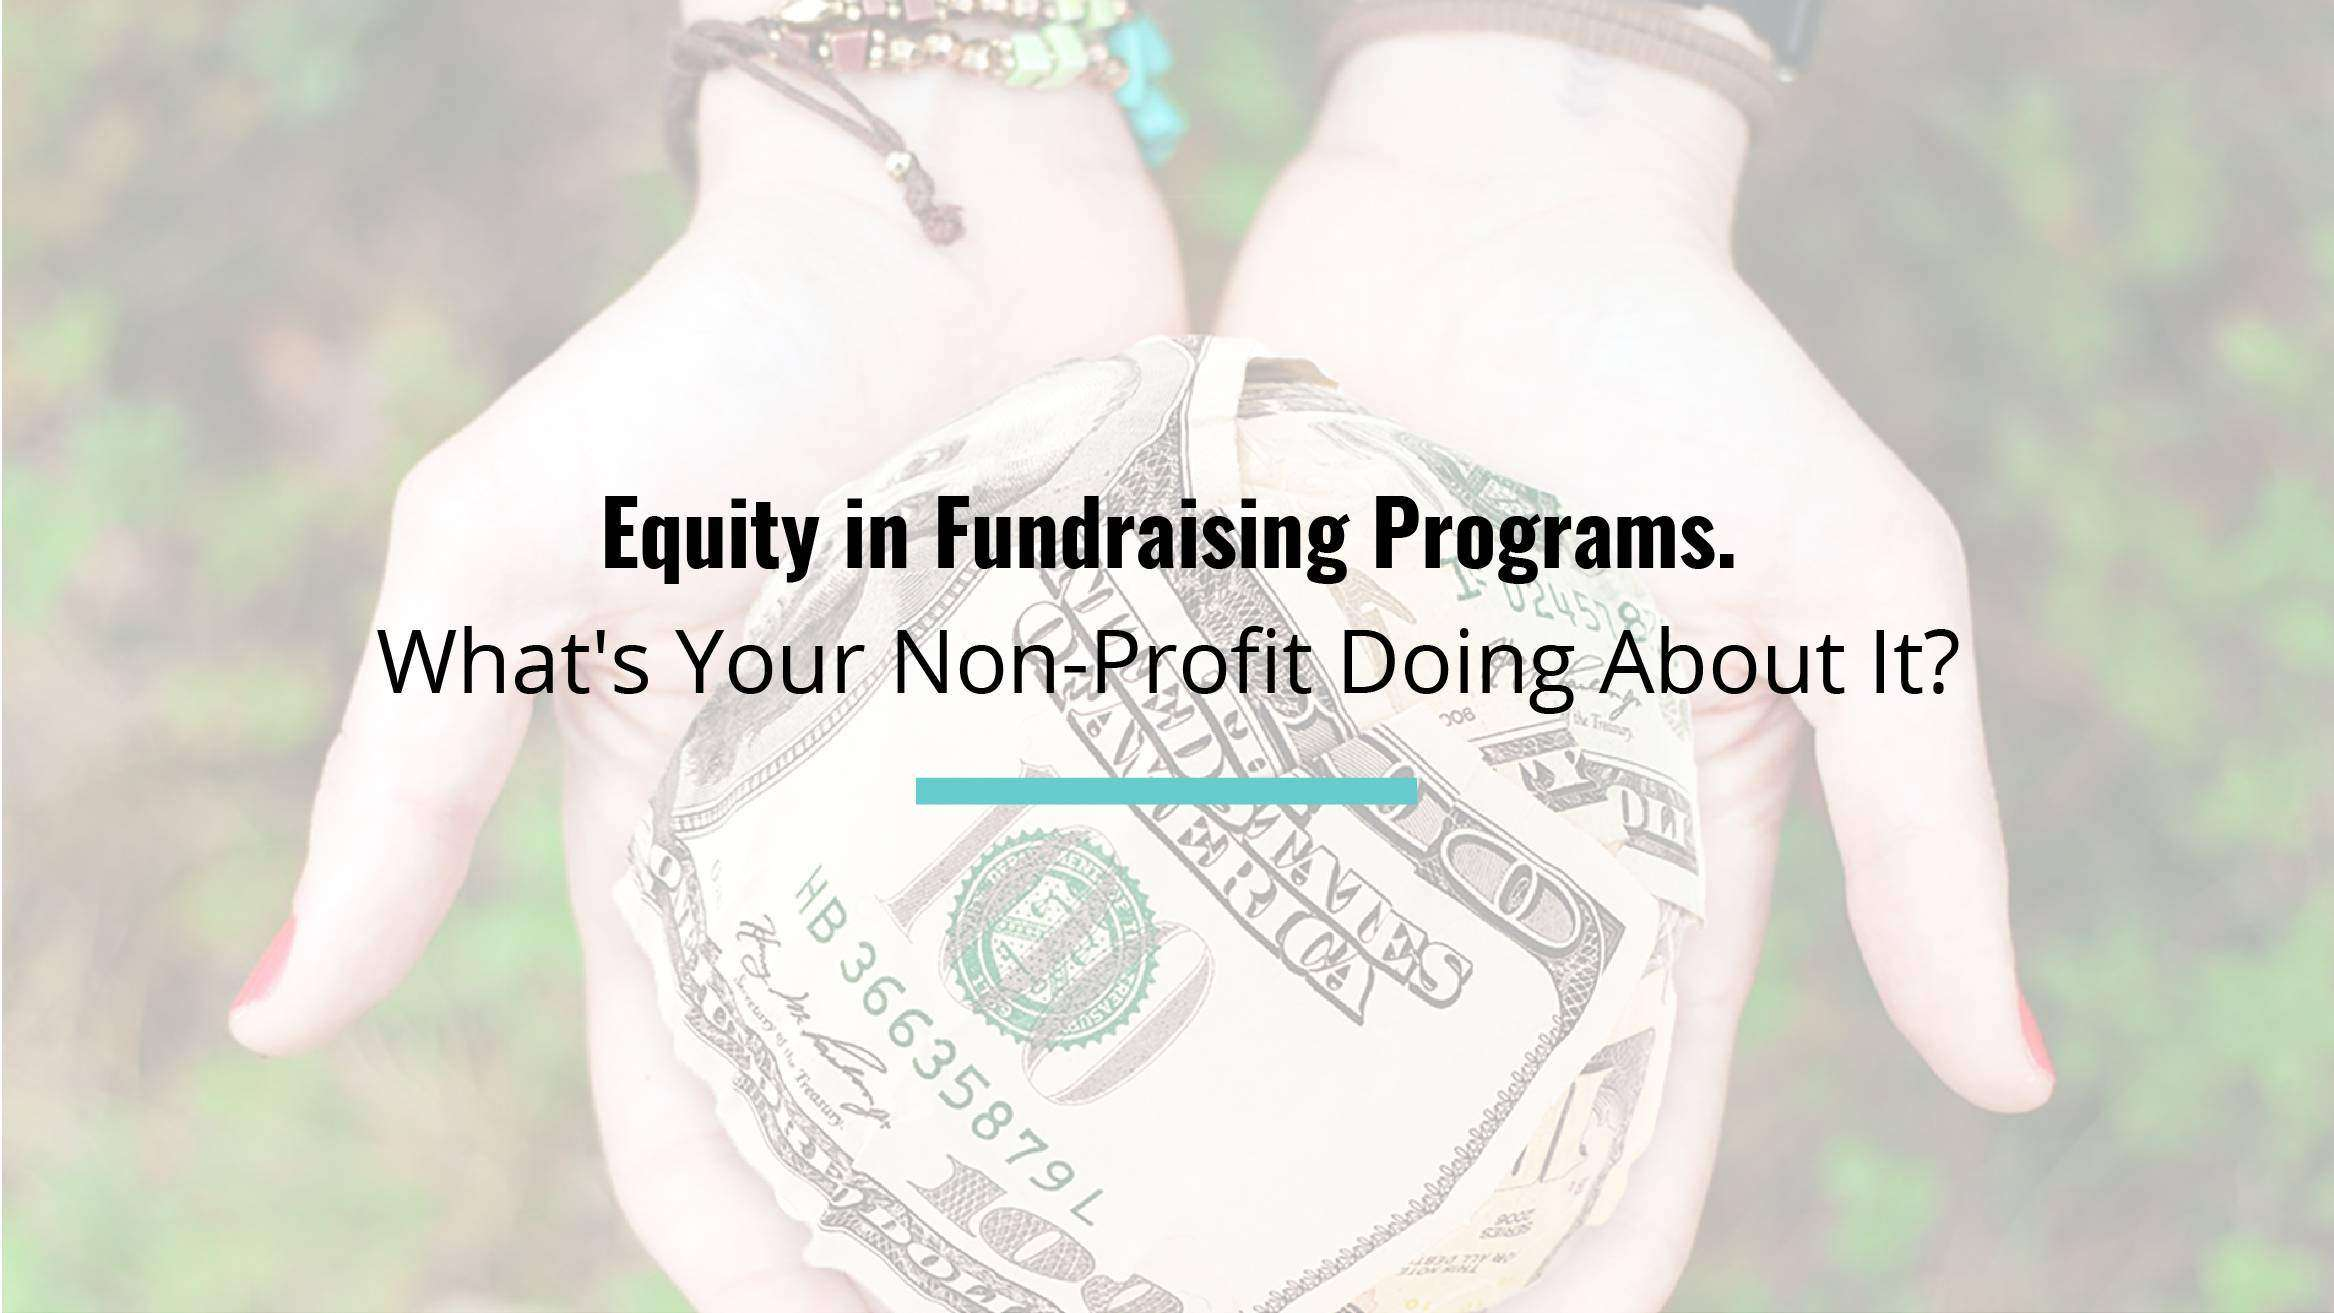 Equity in Fundraising Programs. What's Your Non-Profit Doing About It?